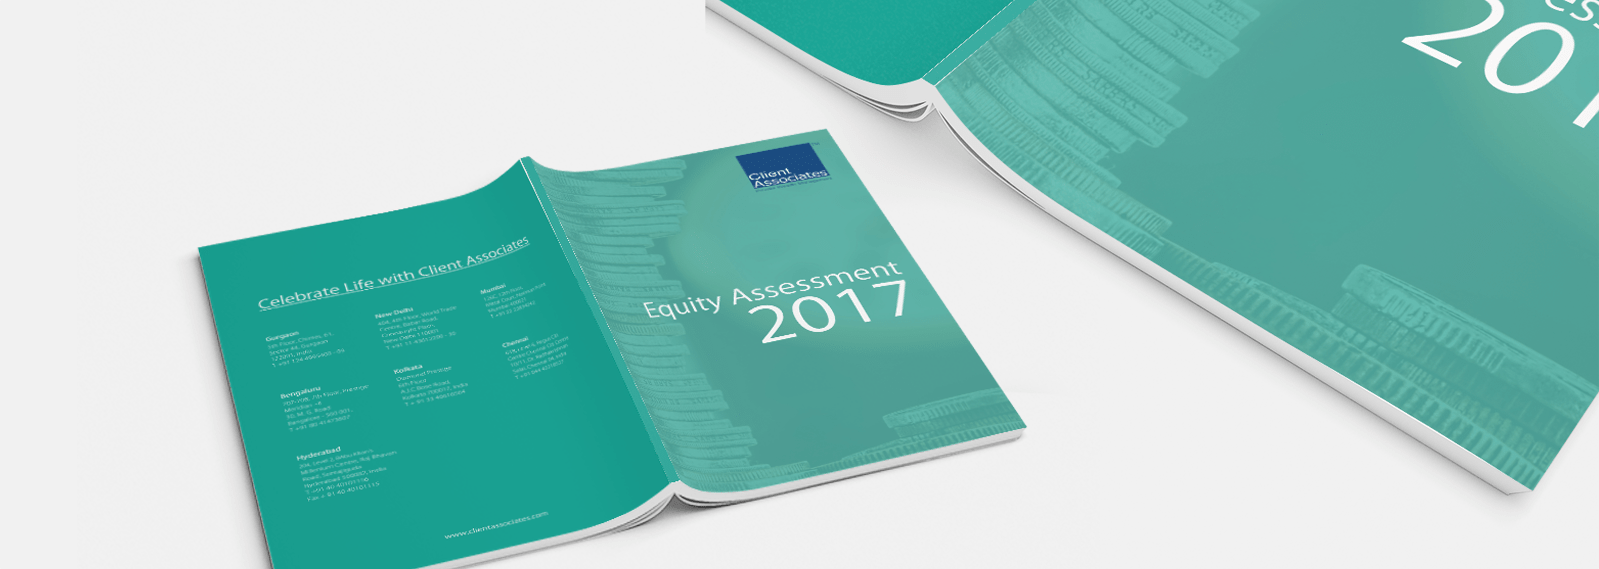 Annual Report Design for Client Associates